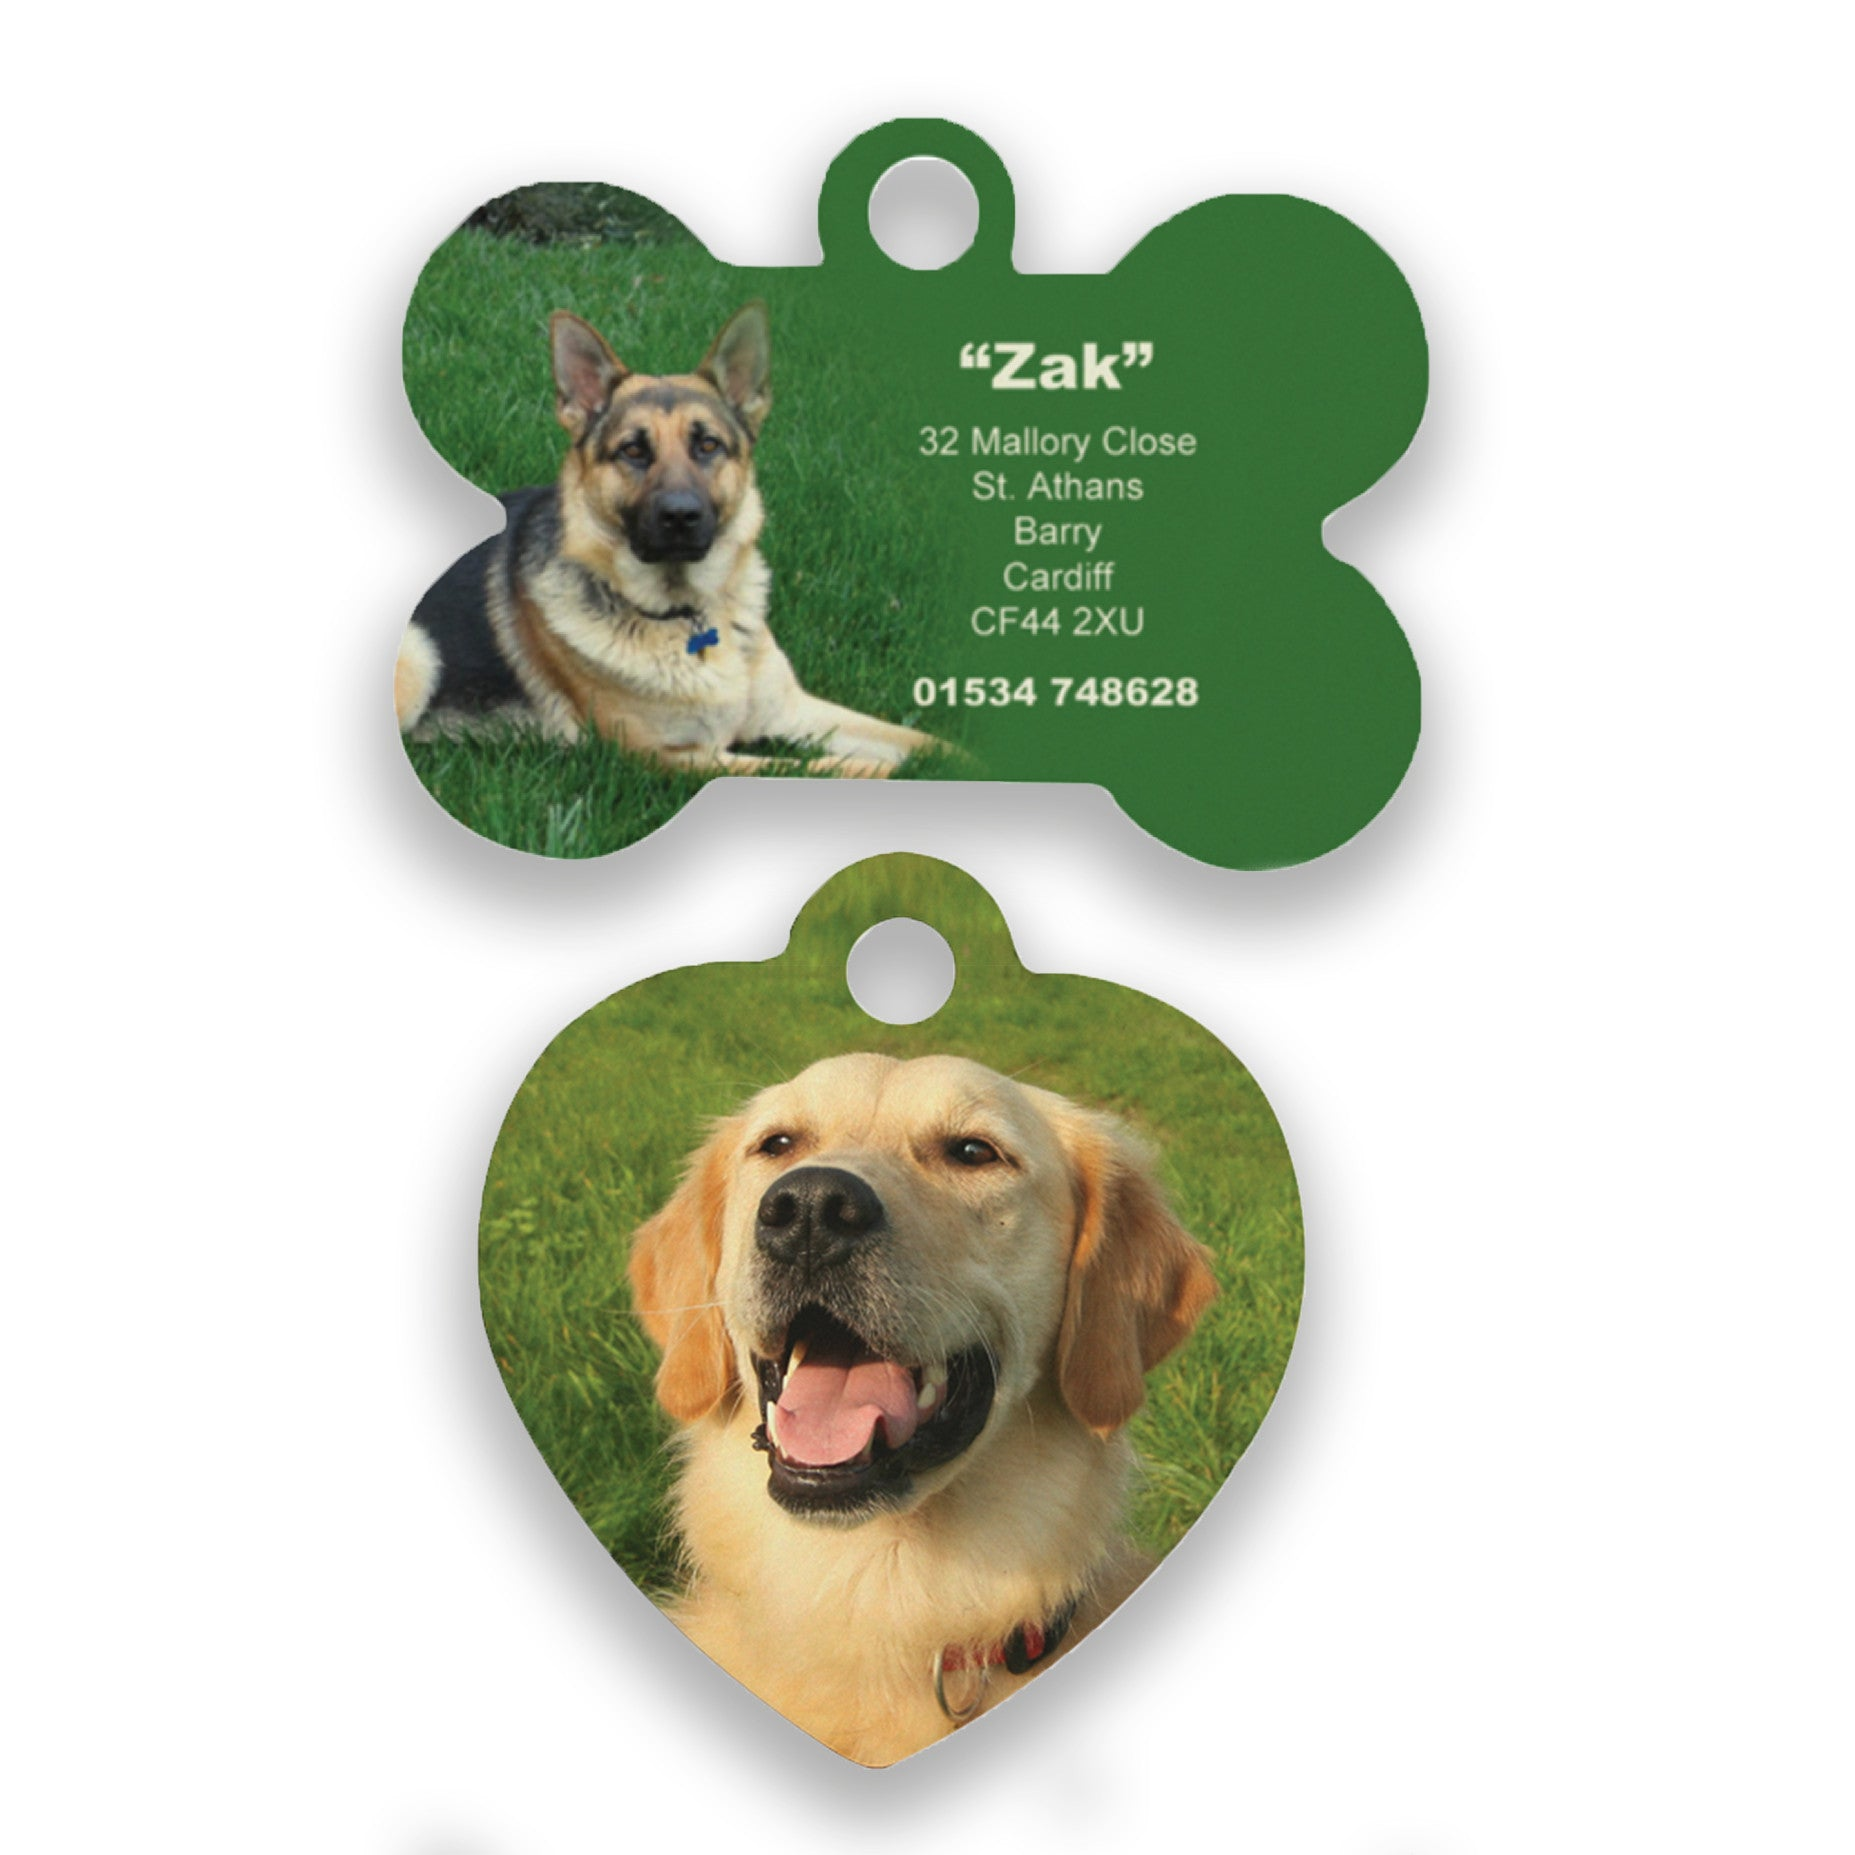 Creative Personalised Designed Pet ID tags for Dogs And Cats in A bone, Heart, Paw, Diamond, Cat Face, Star, Circle, Flower, Shield, Oval, Octagon Shapes